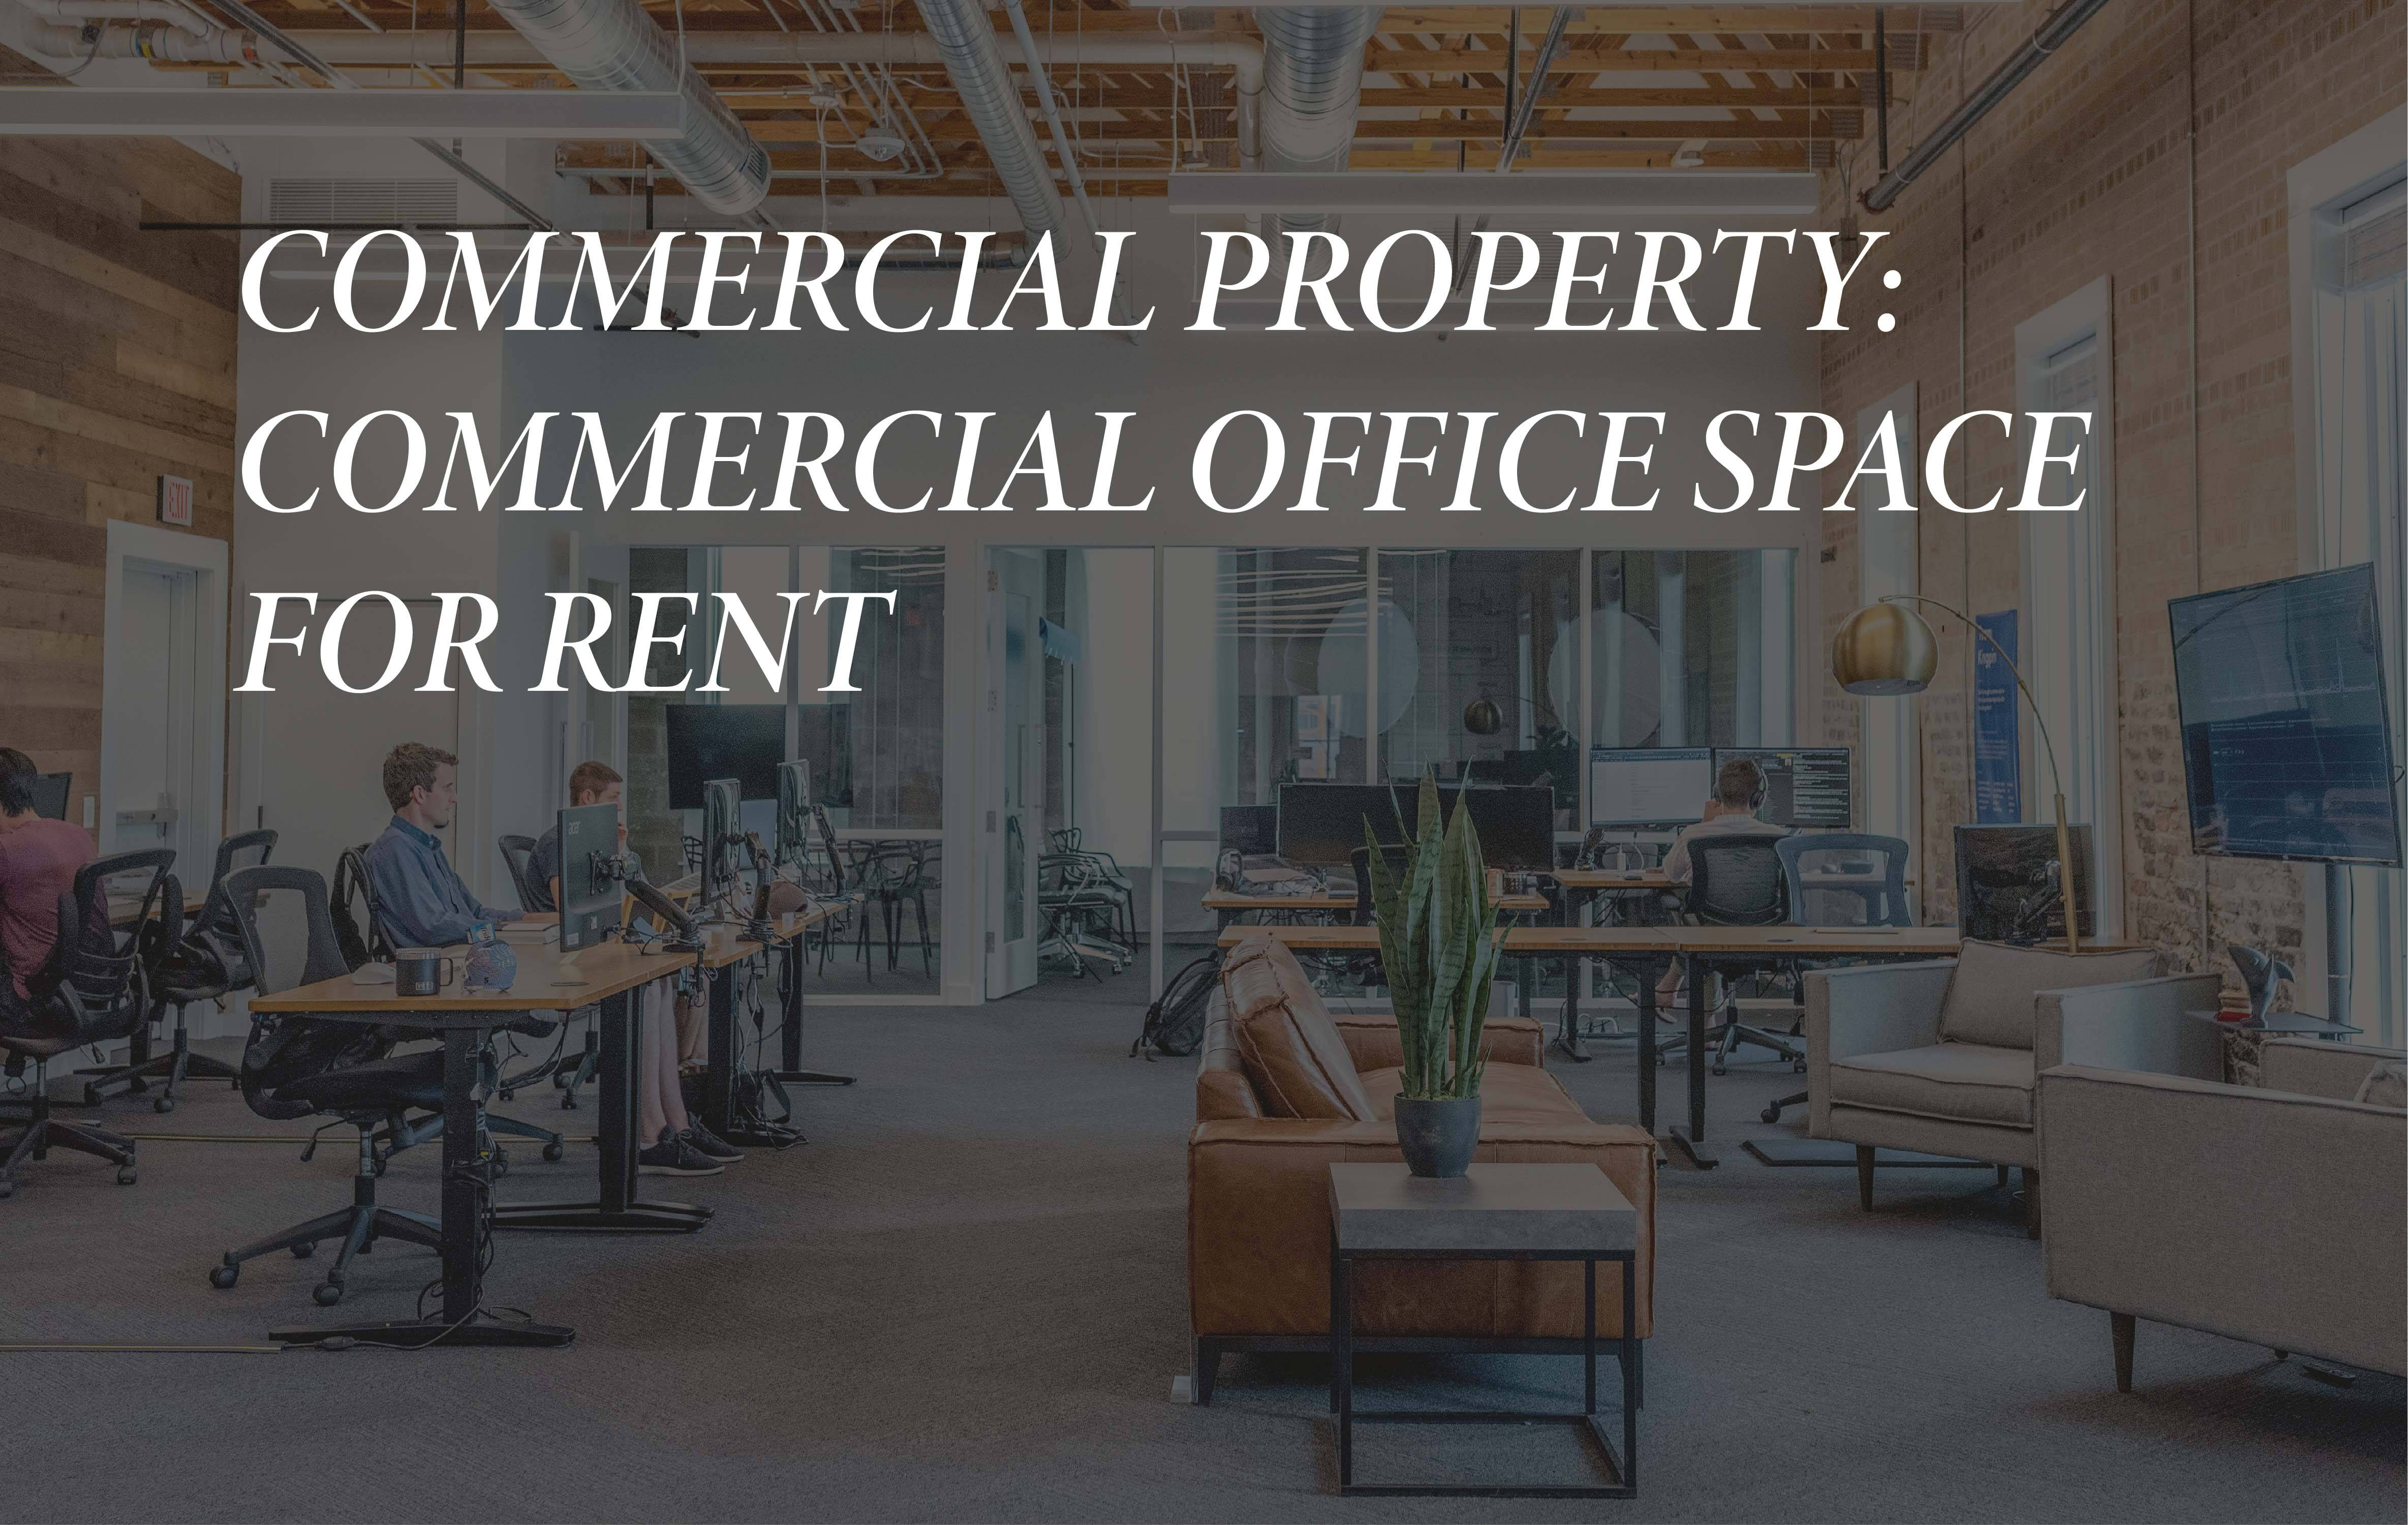 Commercial property: Commercial office space for rent